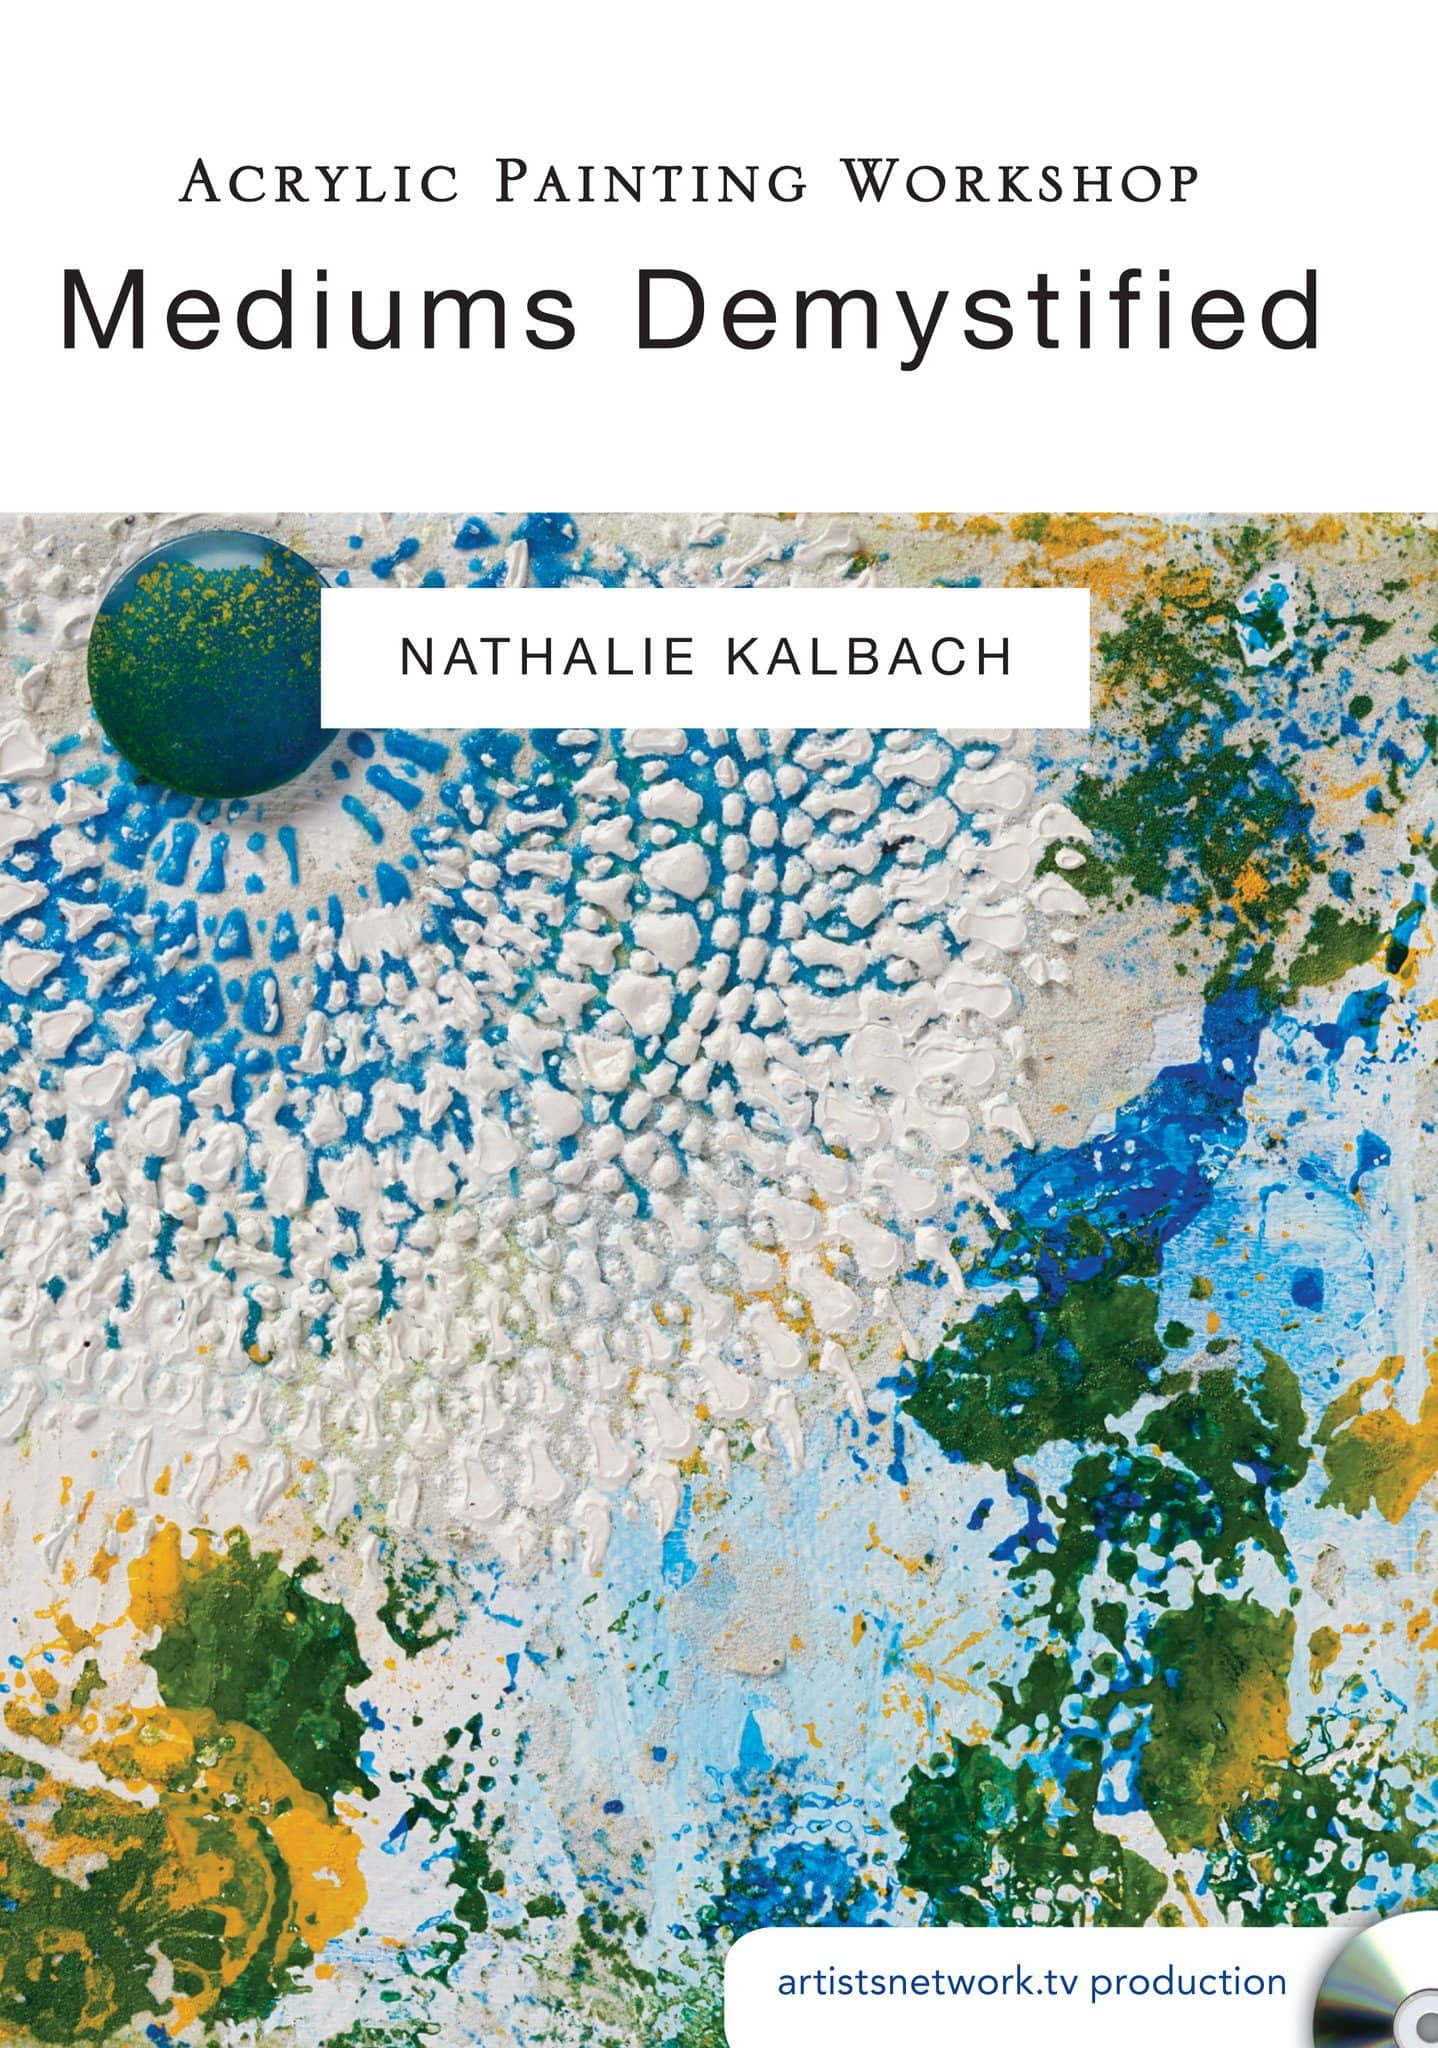 Acrylic Painting Workshop:  Mediums Demystified with Nathalie Kalbach